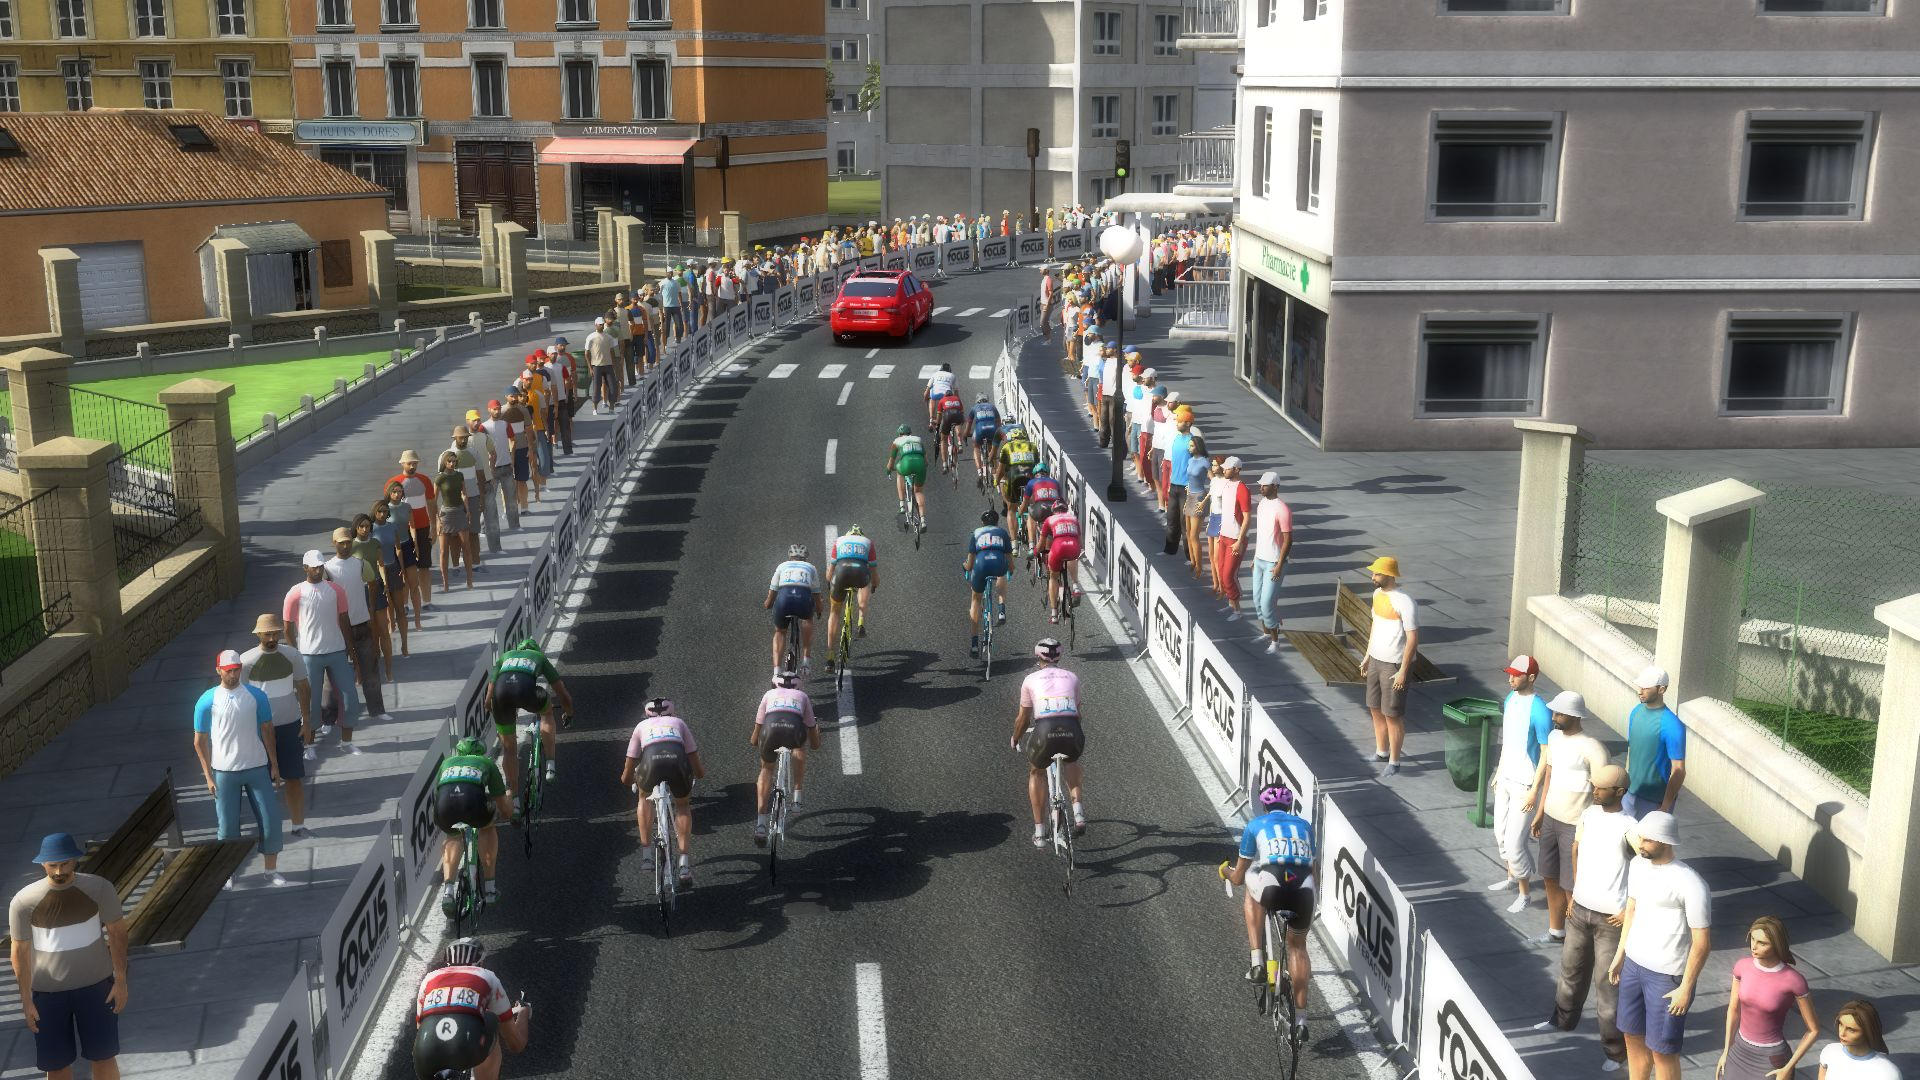 pcmdaily.com/images/mg/2019/Races/HC/Slovenie/mg19_slo_s03_08.jpg